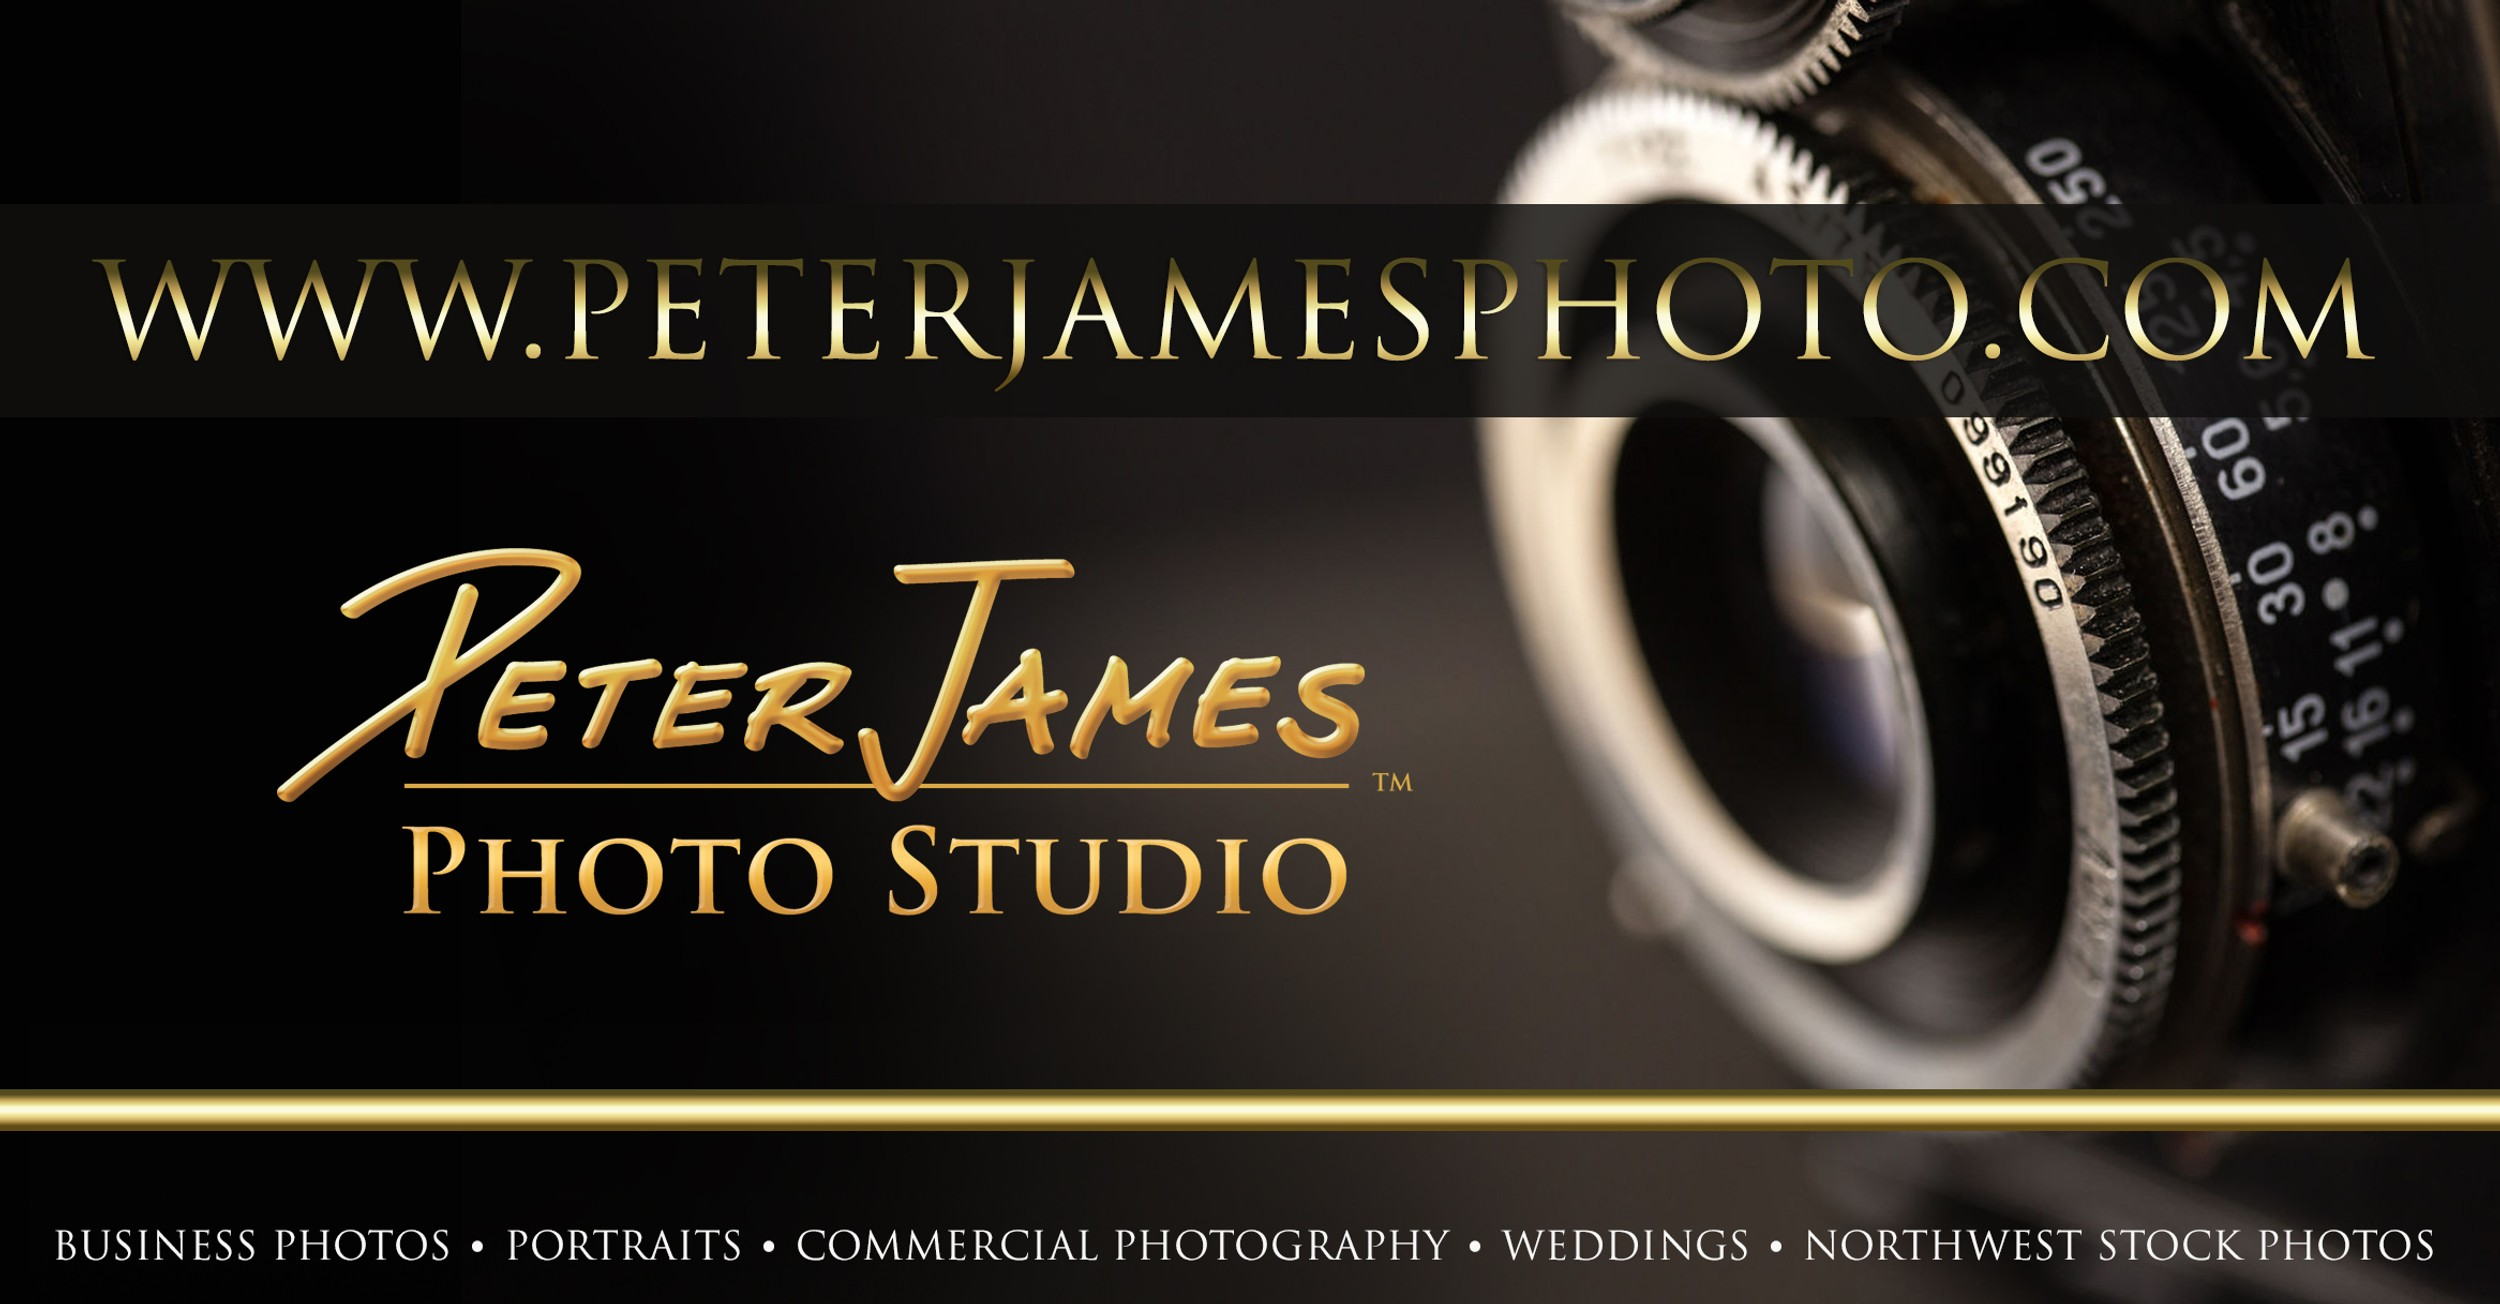 Peter James Photography Studio logo